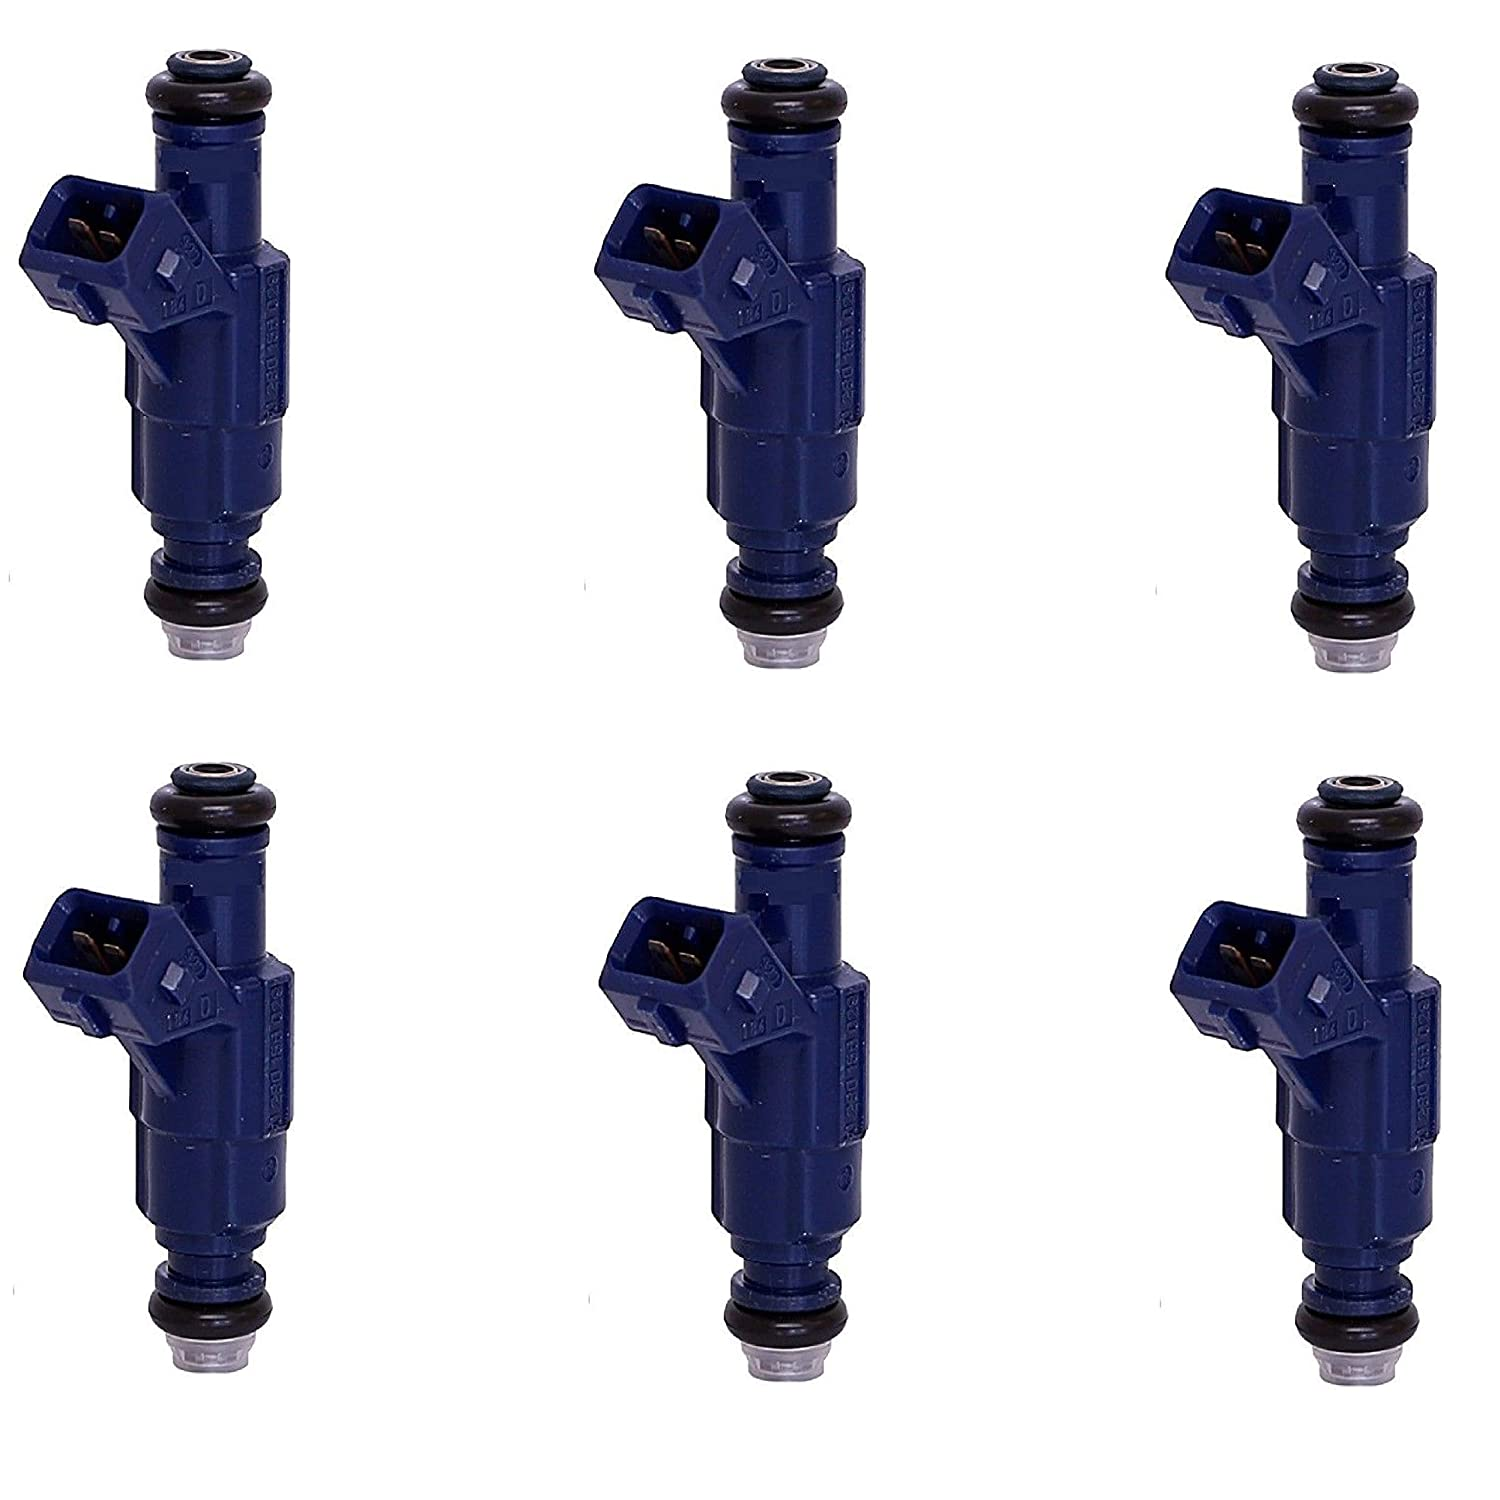 1X Genuine Bosch Fuel Injector for 2004 Ford Explorer Mercury Mountaineer 4.0L